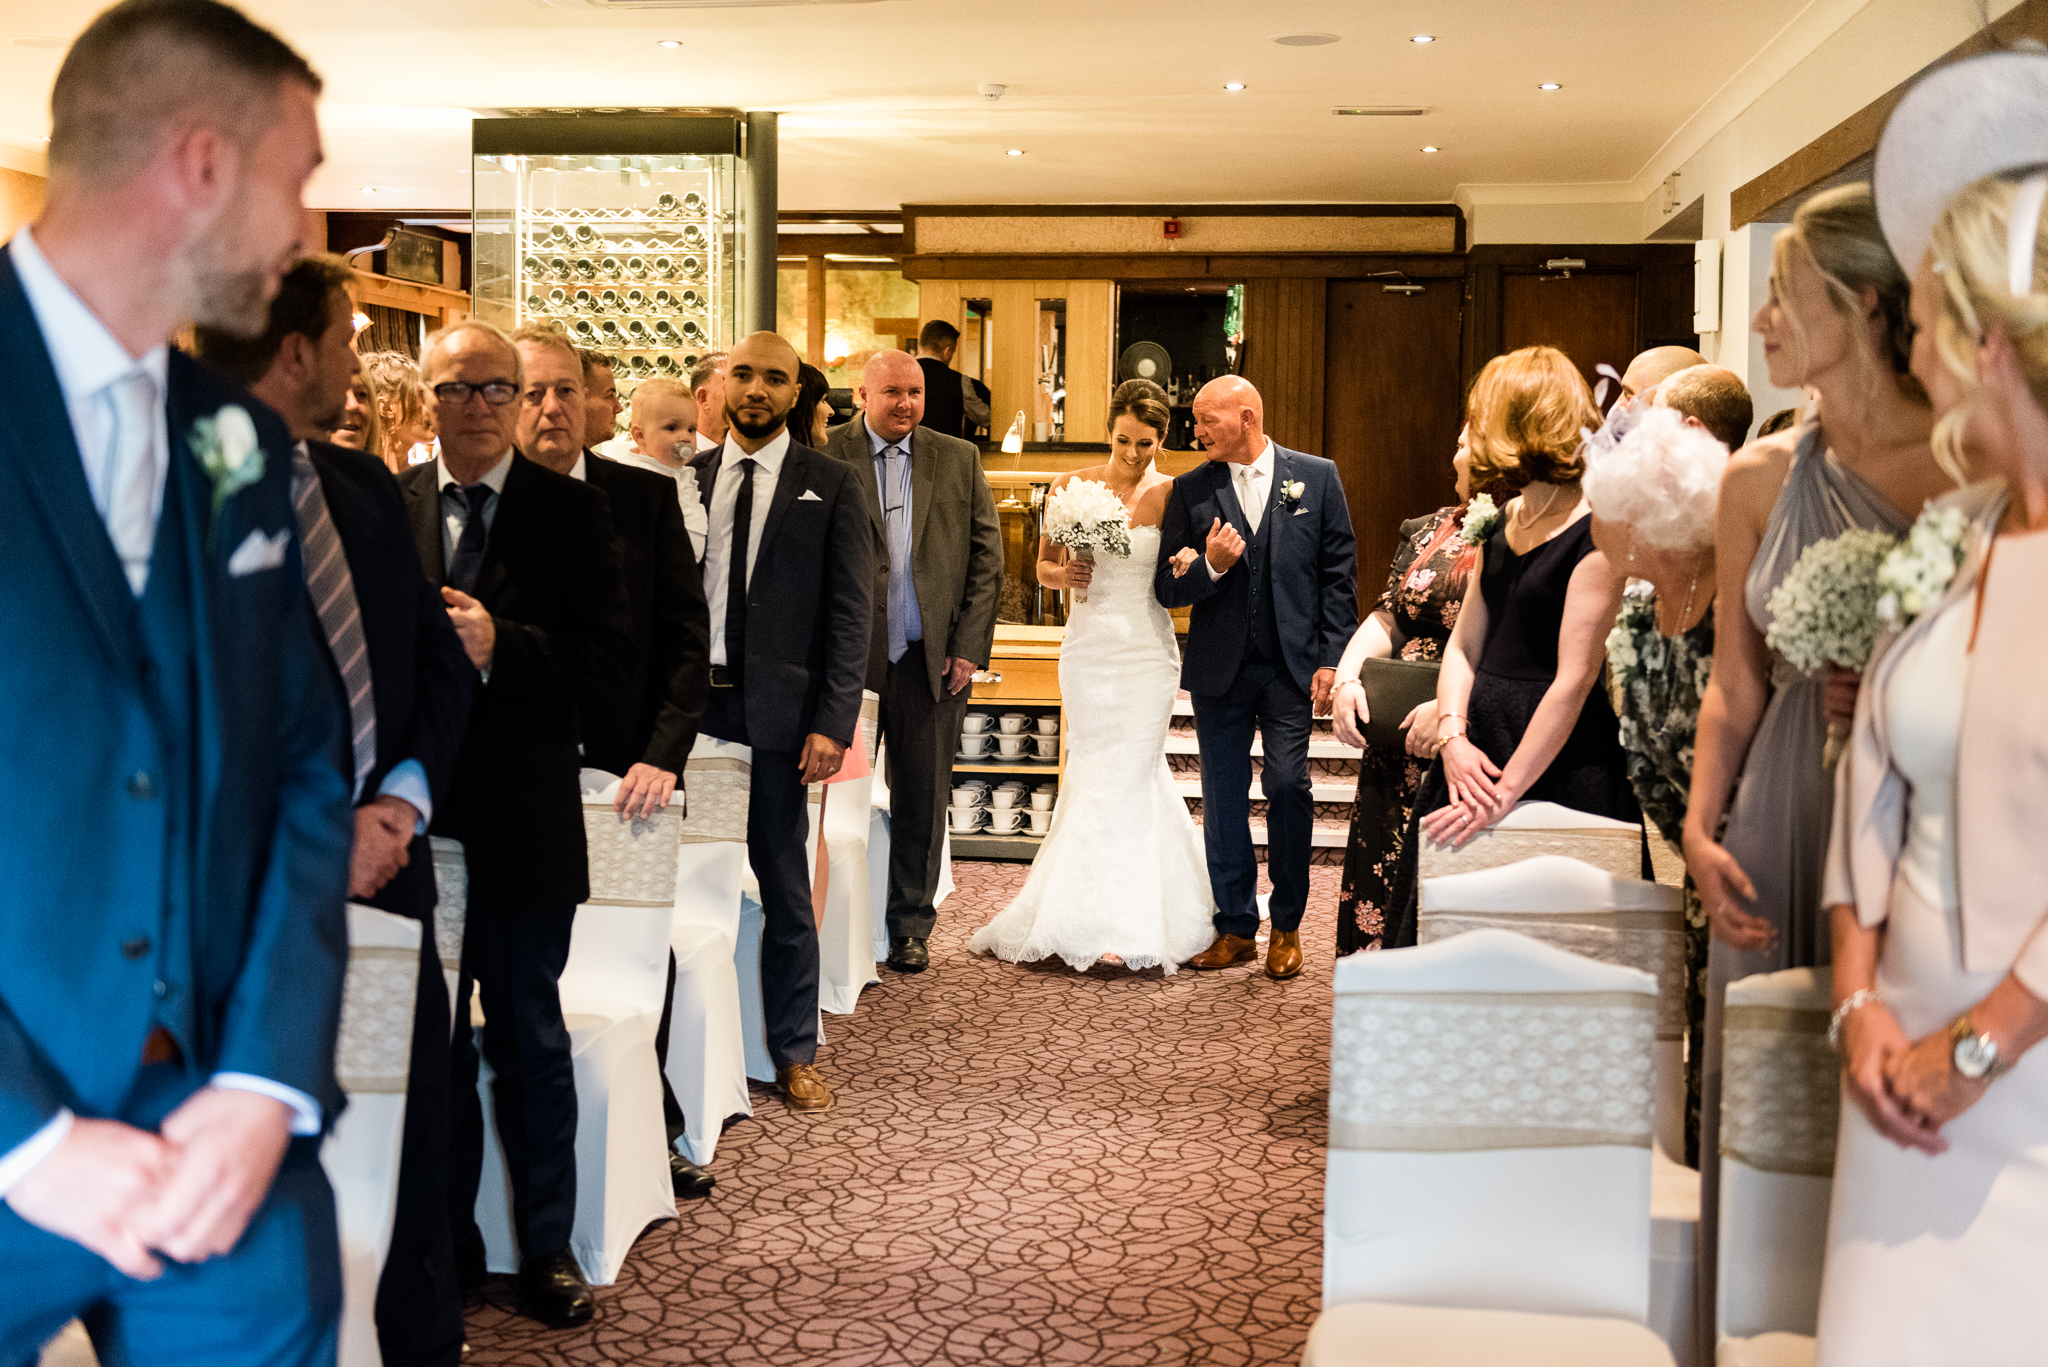 Staffordshire Moorlands Documentary Wedding Photography at The Three Horseshoes, Blackshaw Moor - Jenny Harper-18.jpg